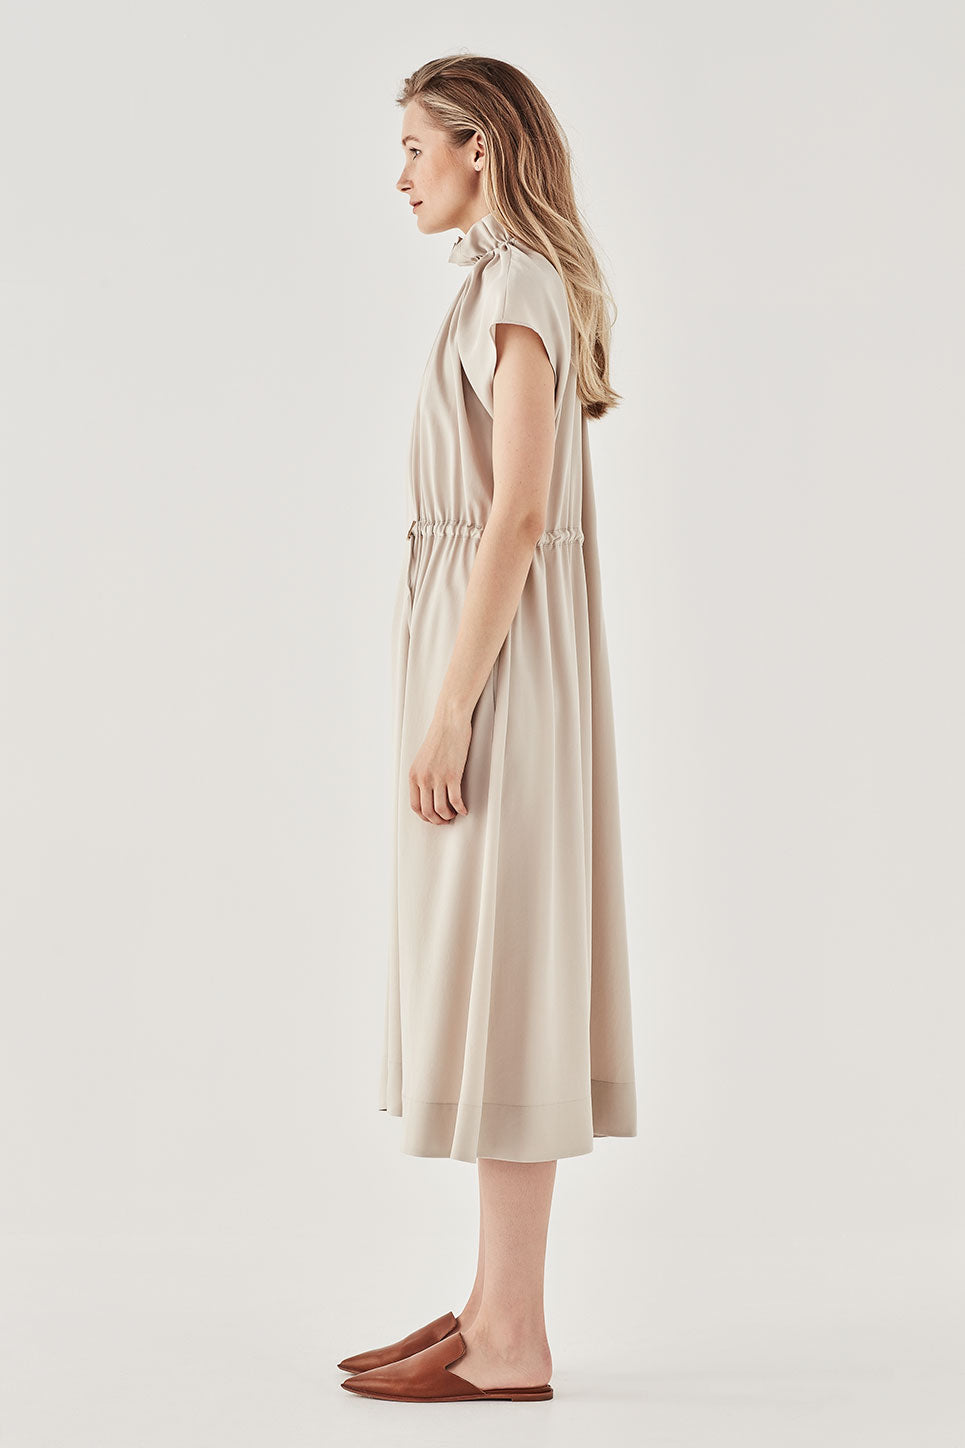 The Ondine Dress in Stone